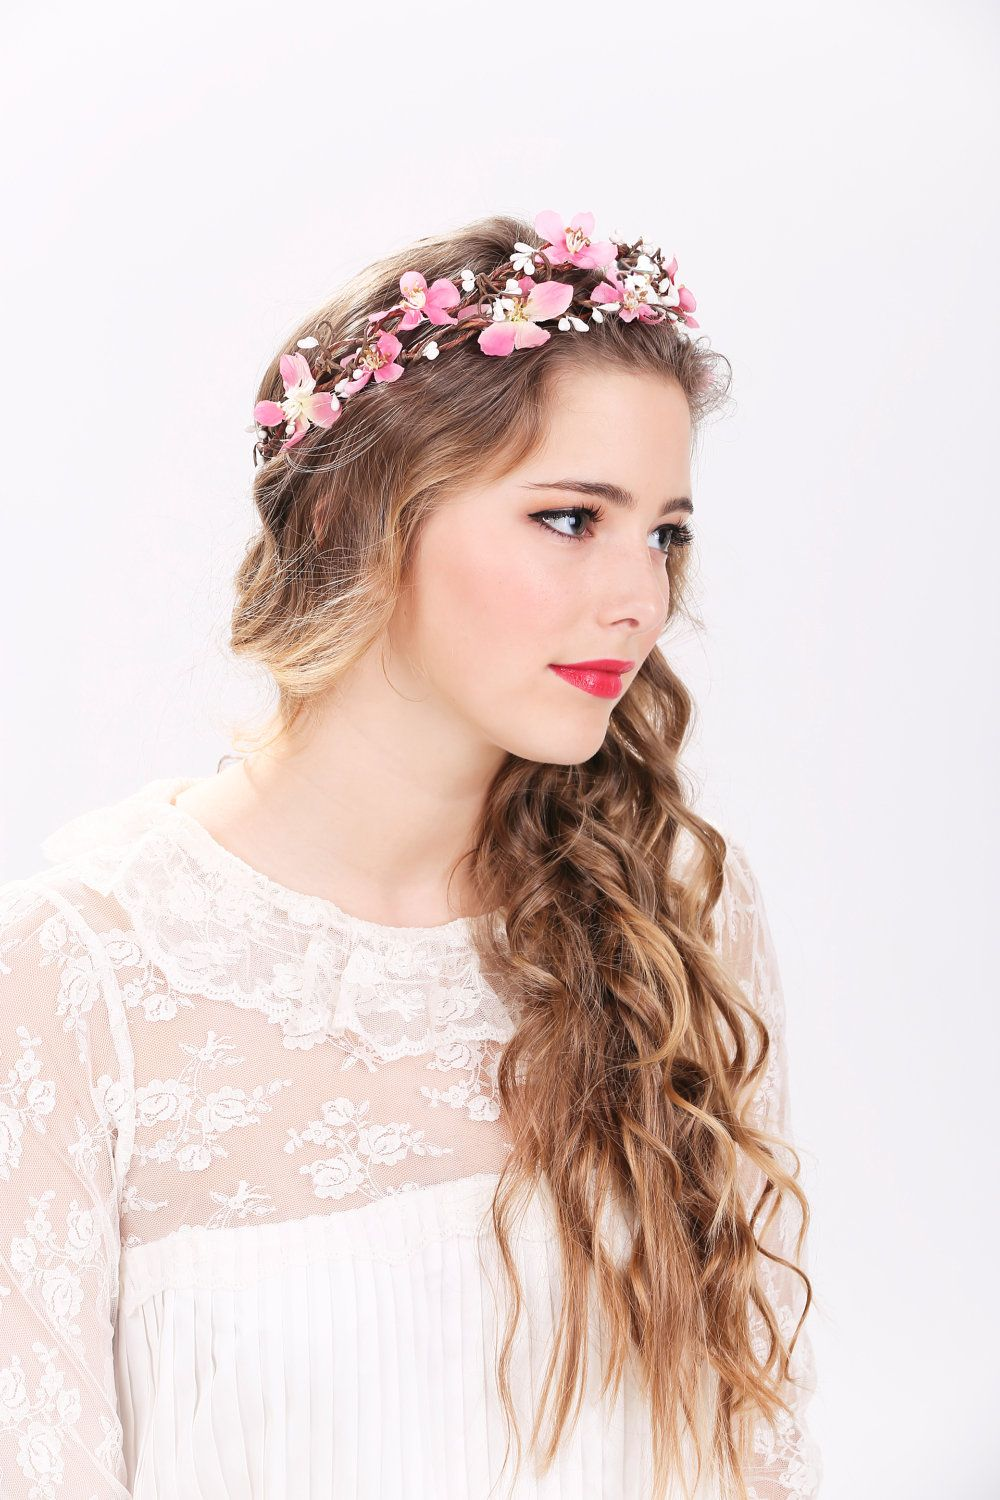 Surprising Pink Flower Crown Wedding Headpiec Wedding Headpiece Wedding Hairstyle Inspiration Daily Dogsangcom